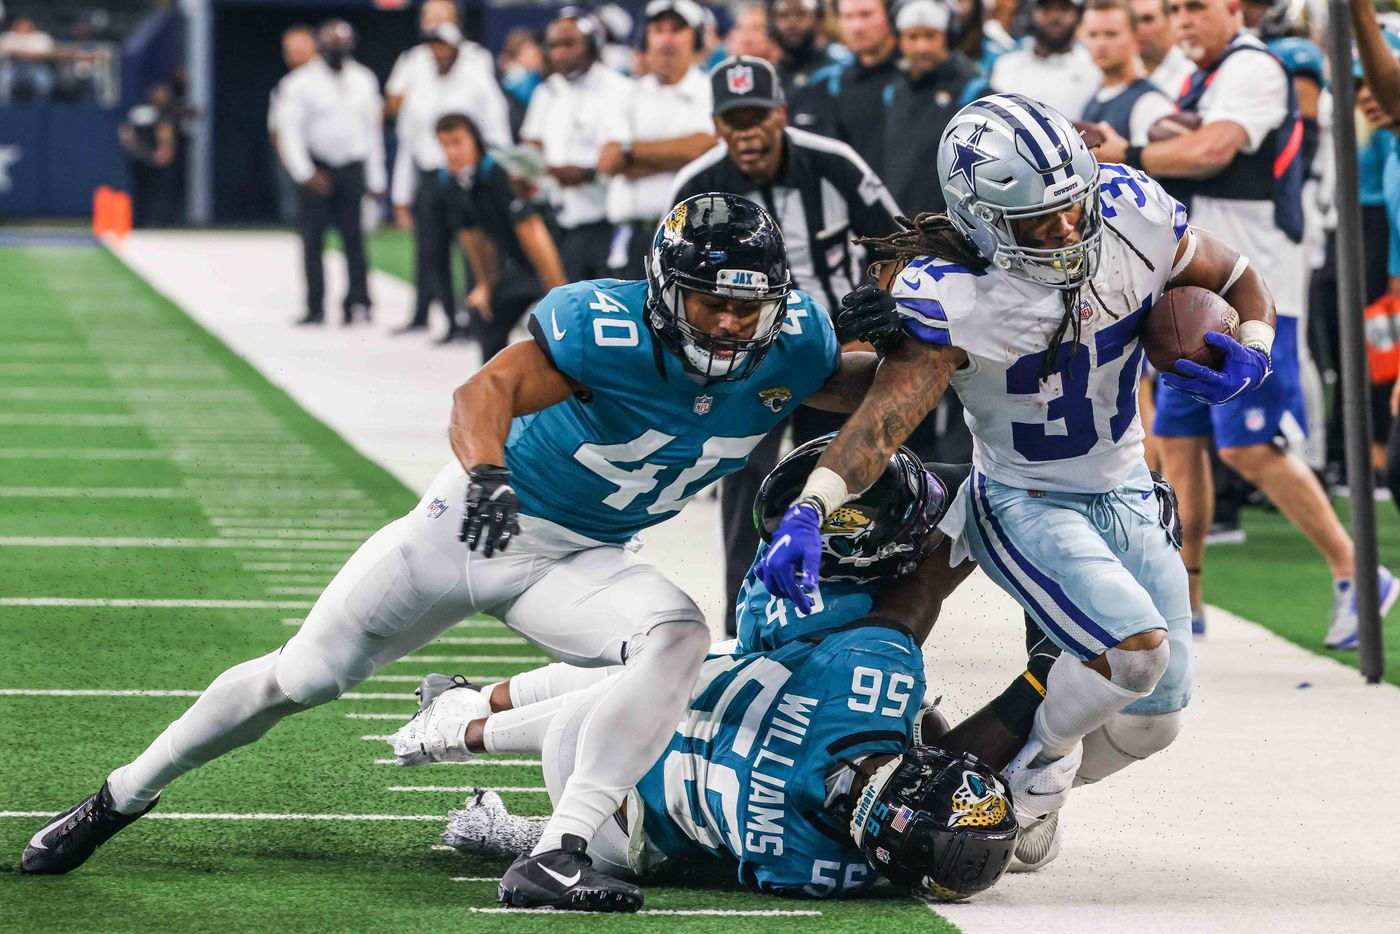 Dallas Cowboys running back JaQuan Hardy, 37, gets pushed out of the sideline by Jacksonville Jaguars defense during a preseason game at AT&T stadium in Arlington on Sunday, August 29, 2021. (Lola Gomez/The Dallas Morning News)